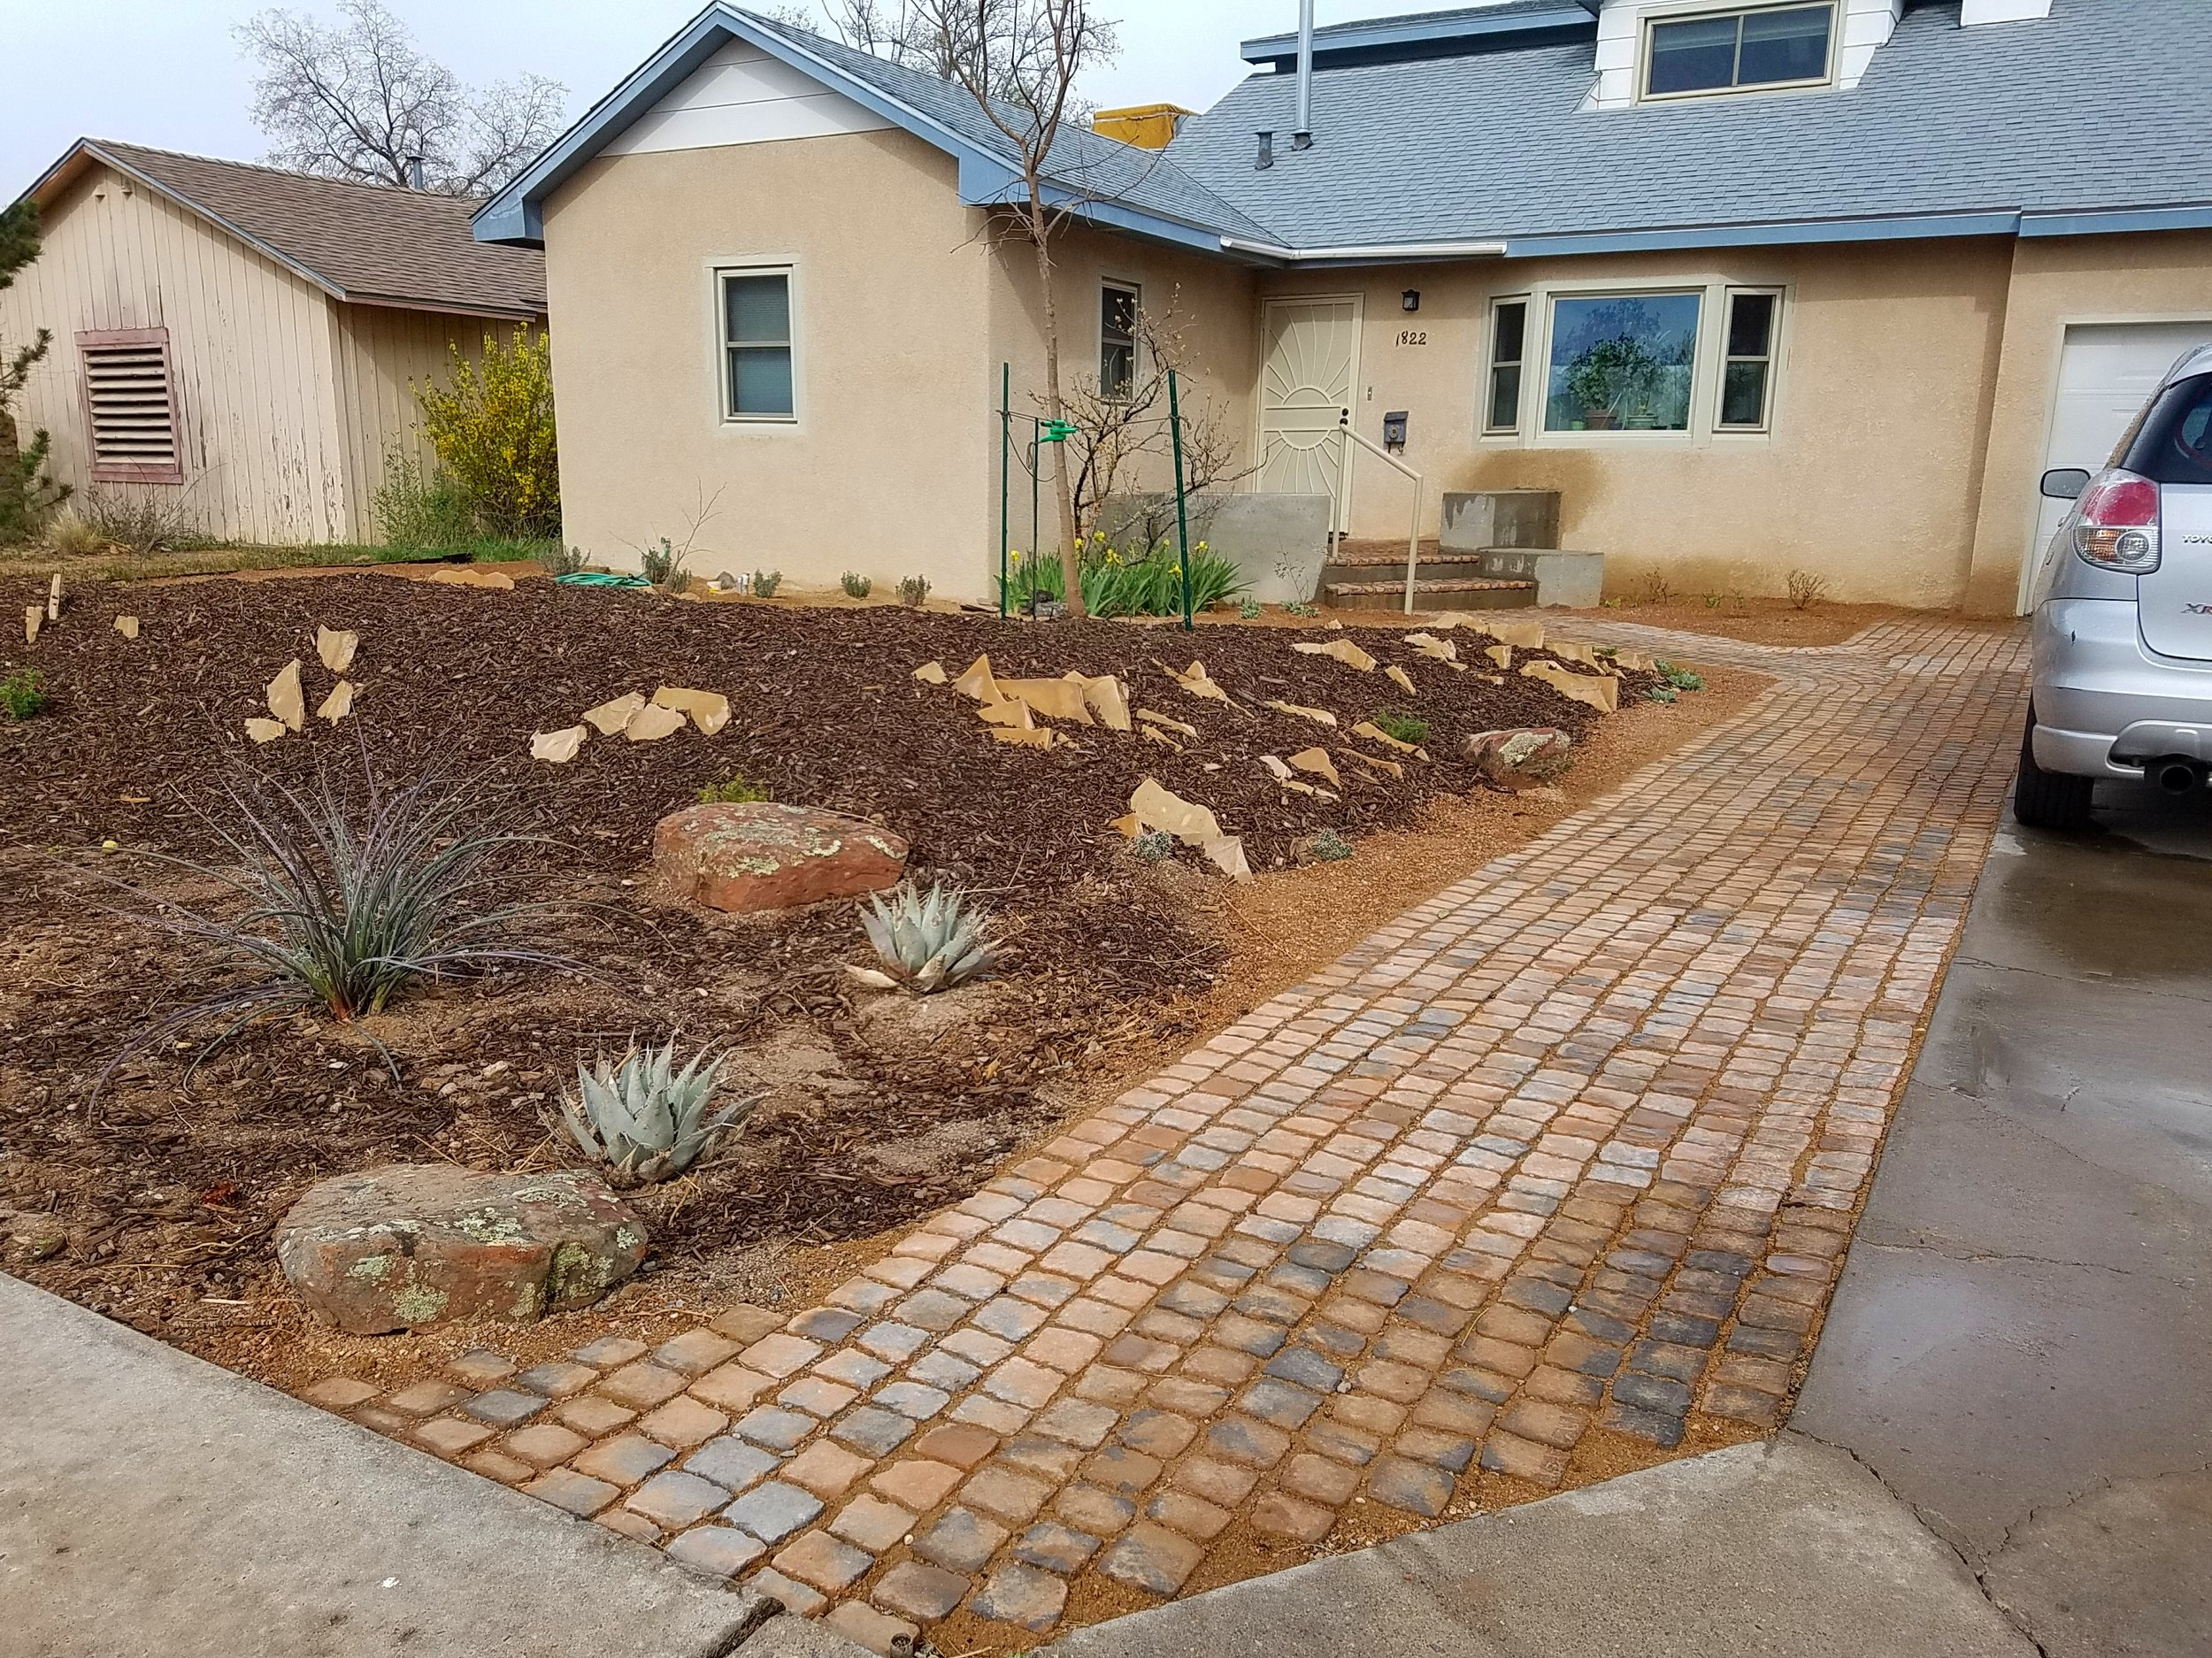 Another completed #landscape designed by a local landscape architect. The #flagstone #rock garden was meant to emulate a feature seen in the Denver #botanical #gardens. These permeable #paver #walkways allow water through to tree roots and make a durable, showy surface.  #southwesthorticulture #landscaping #design #landscapedesign